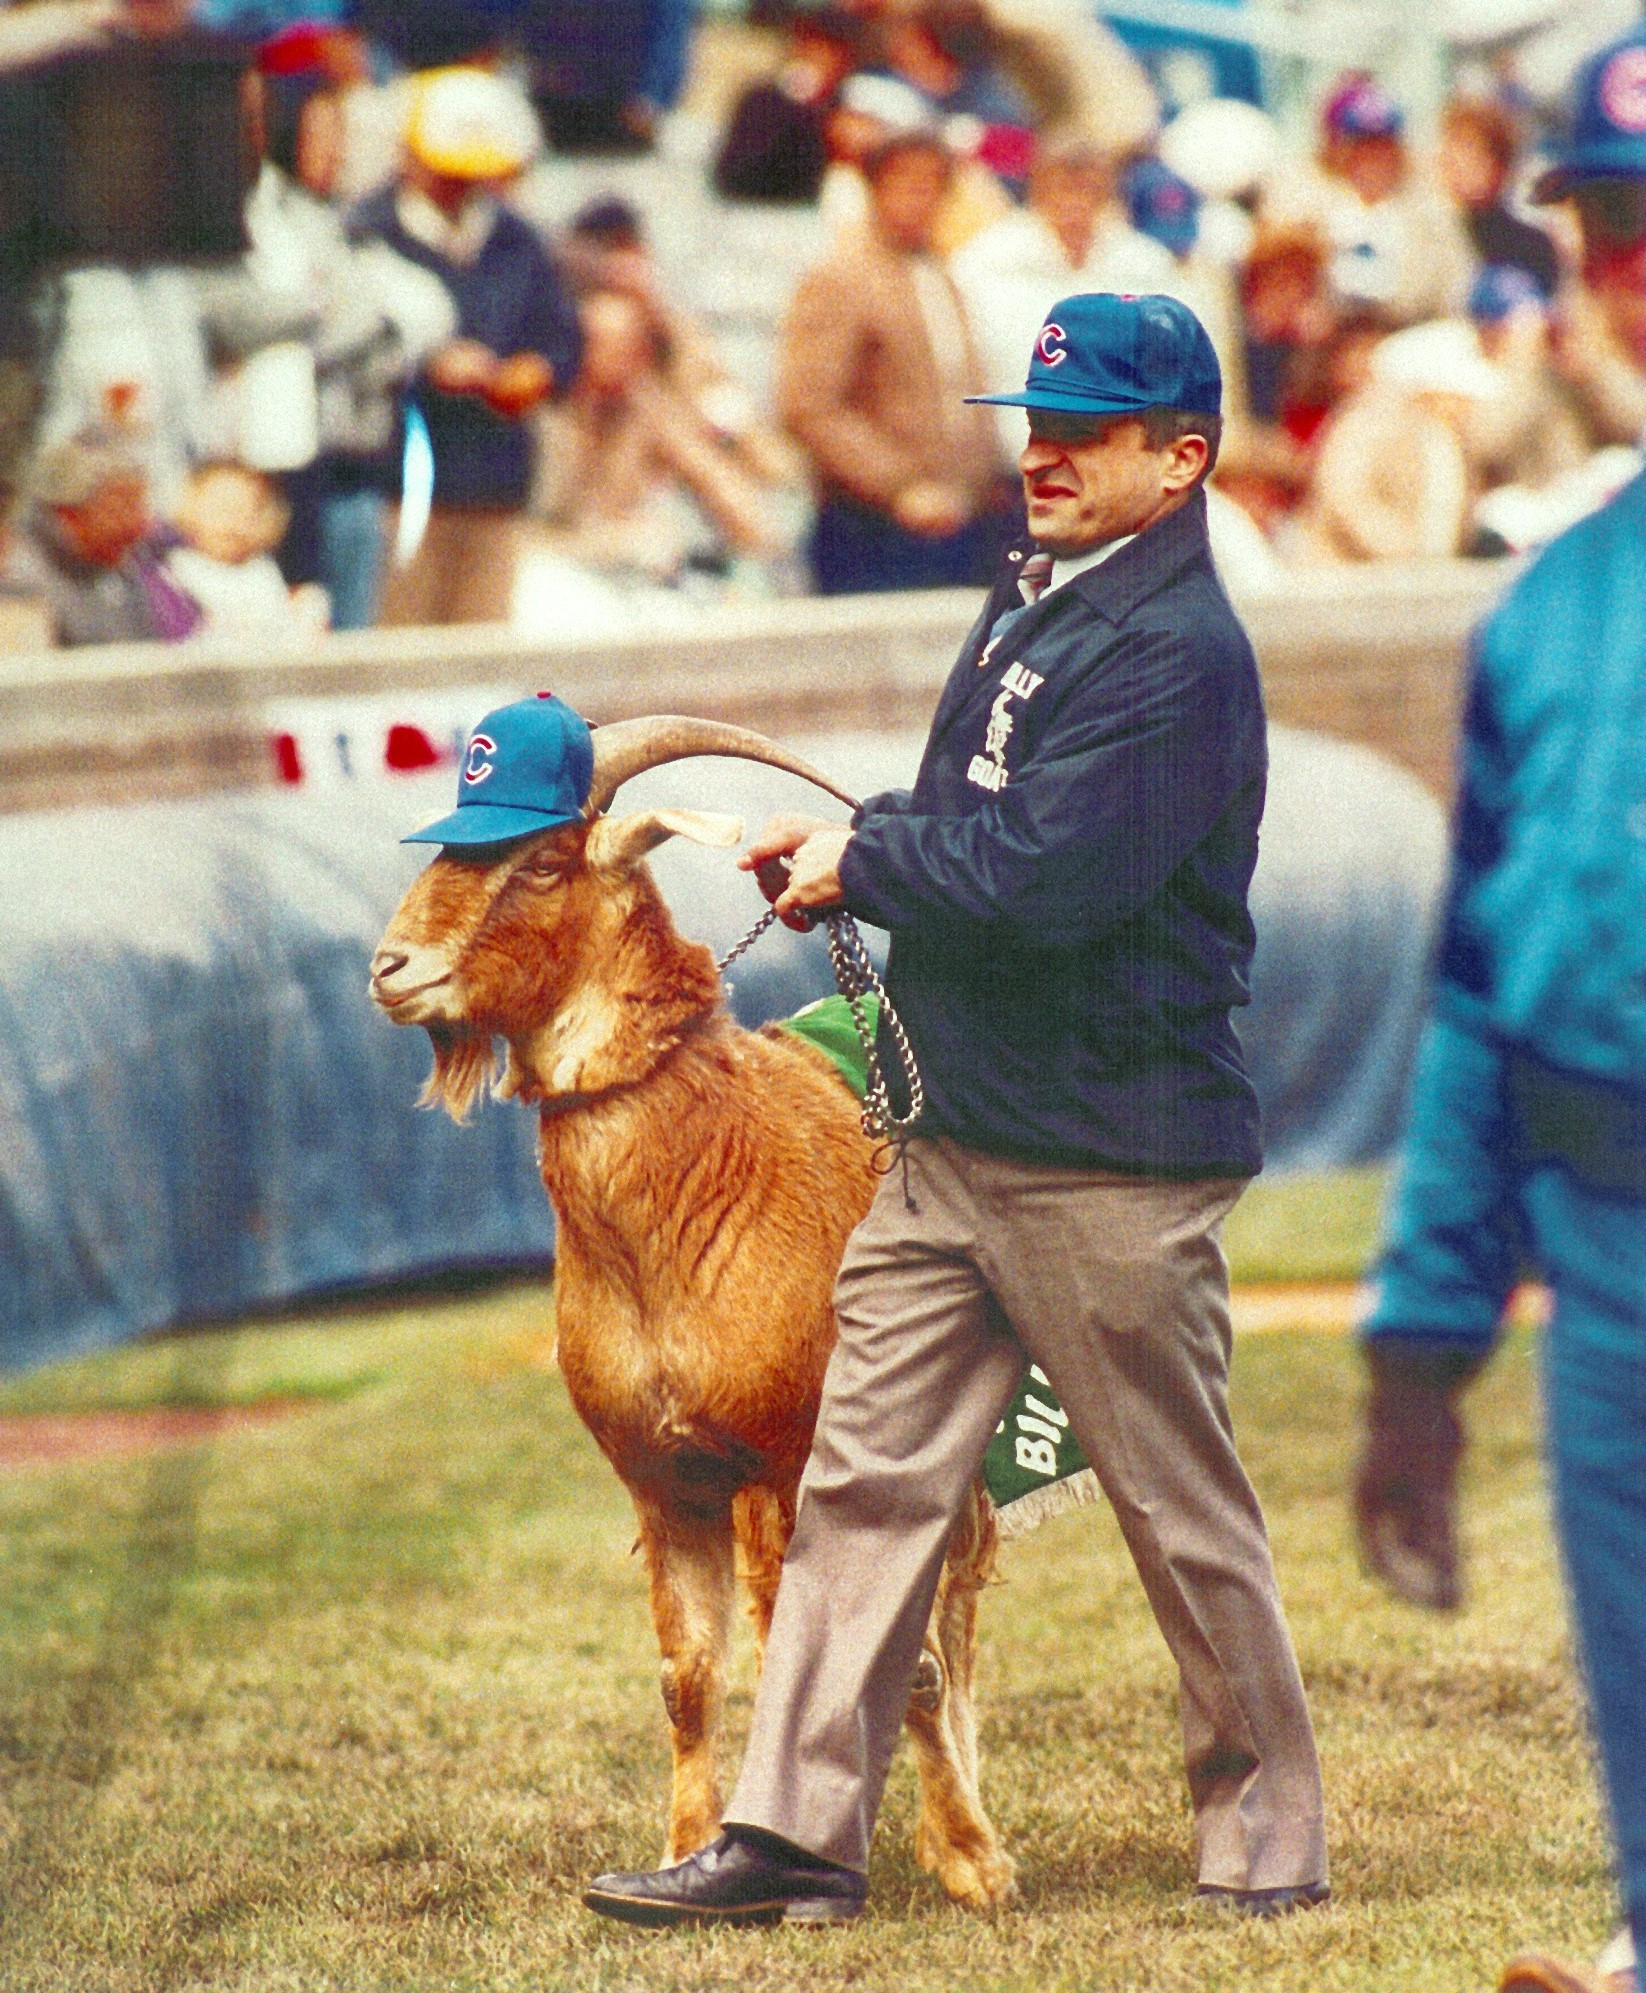 214181ff40382 click to enlarge Sam Sianis and goat at Wrigley Field in 1989